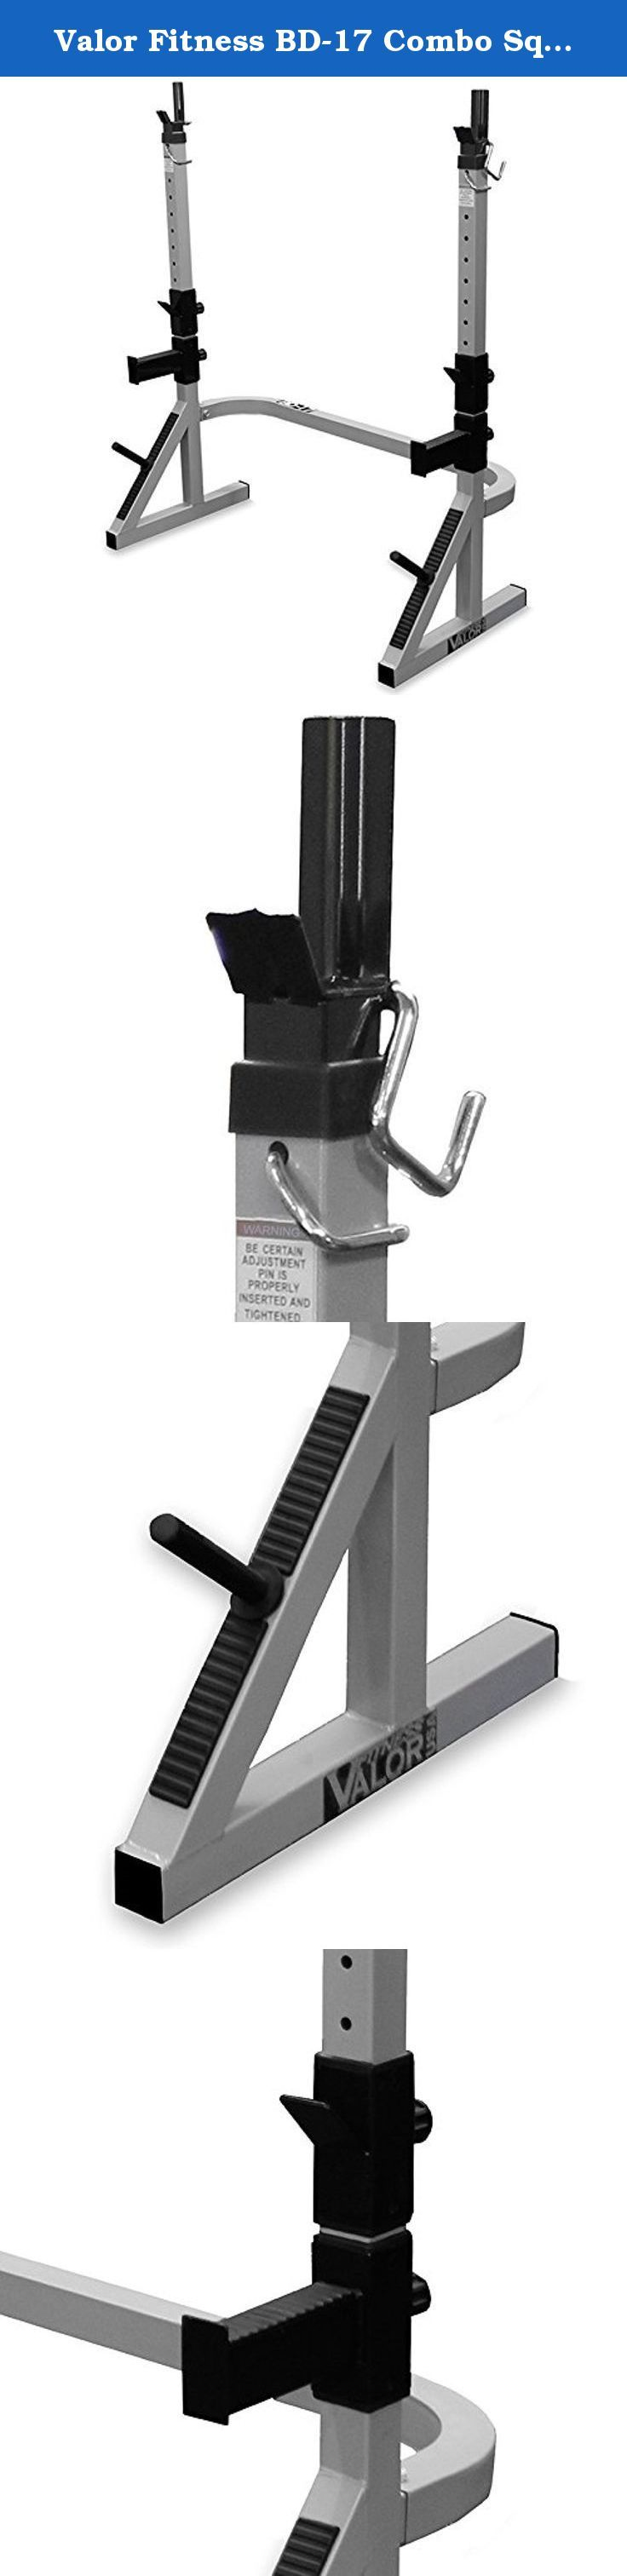 safety precaution about bench fitting shop Safety precautions when operating a pedestal or bench grinder so here is an overview of a few important osha requirements you need to remember when operating these type grinders.